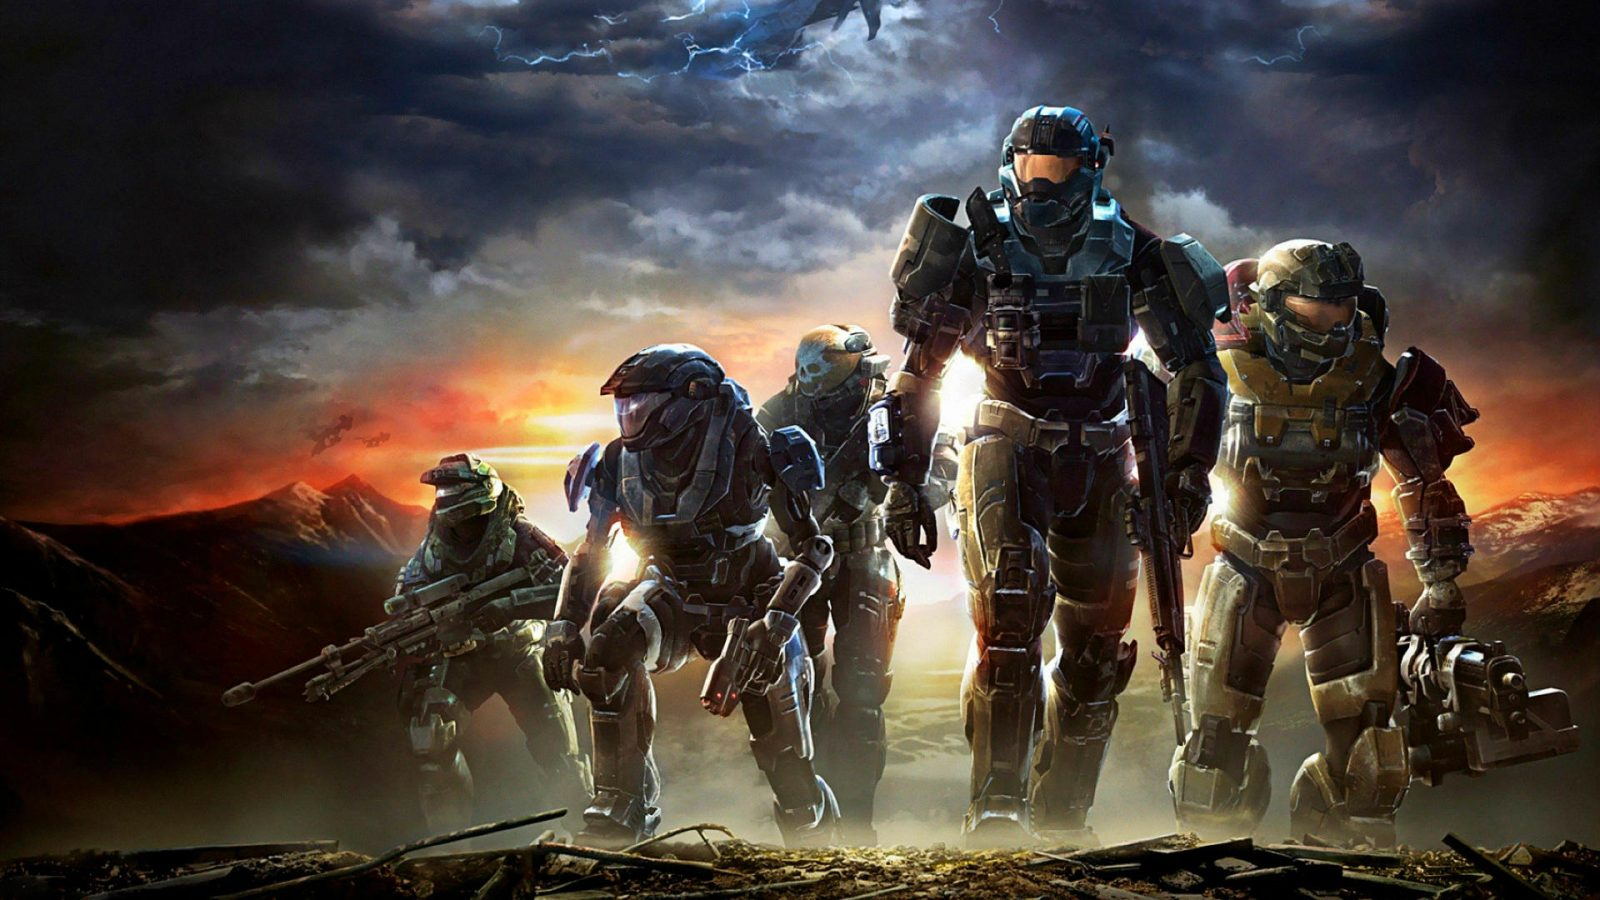 Halo: Reach is Still Great—But Its PC Port is Missing Some Key Features